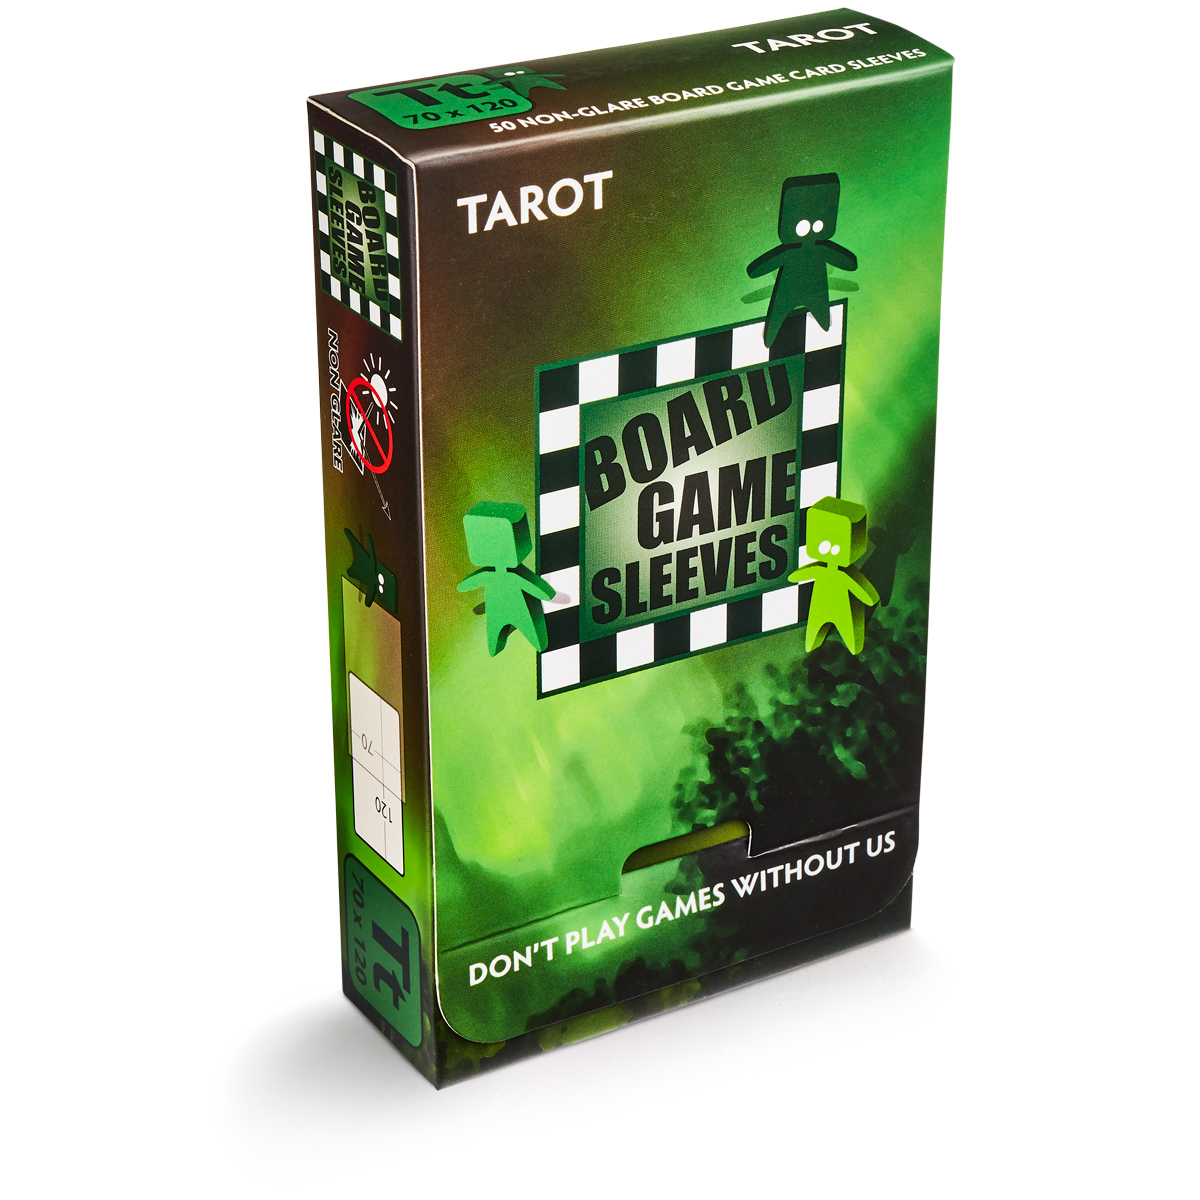 BOARD GAME SLEEVES - TAROT (70X120) NON-GLARE - BUSTINE OPACHE (50)